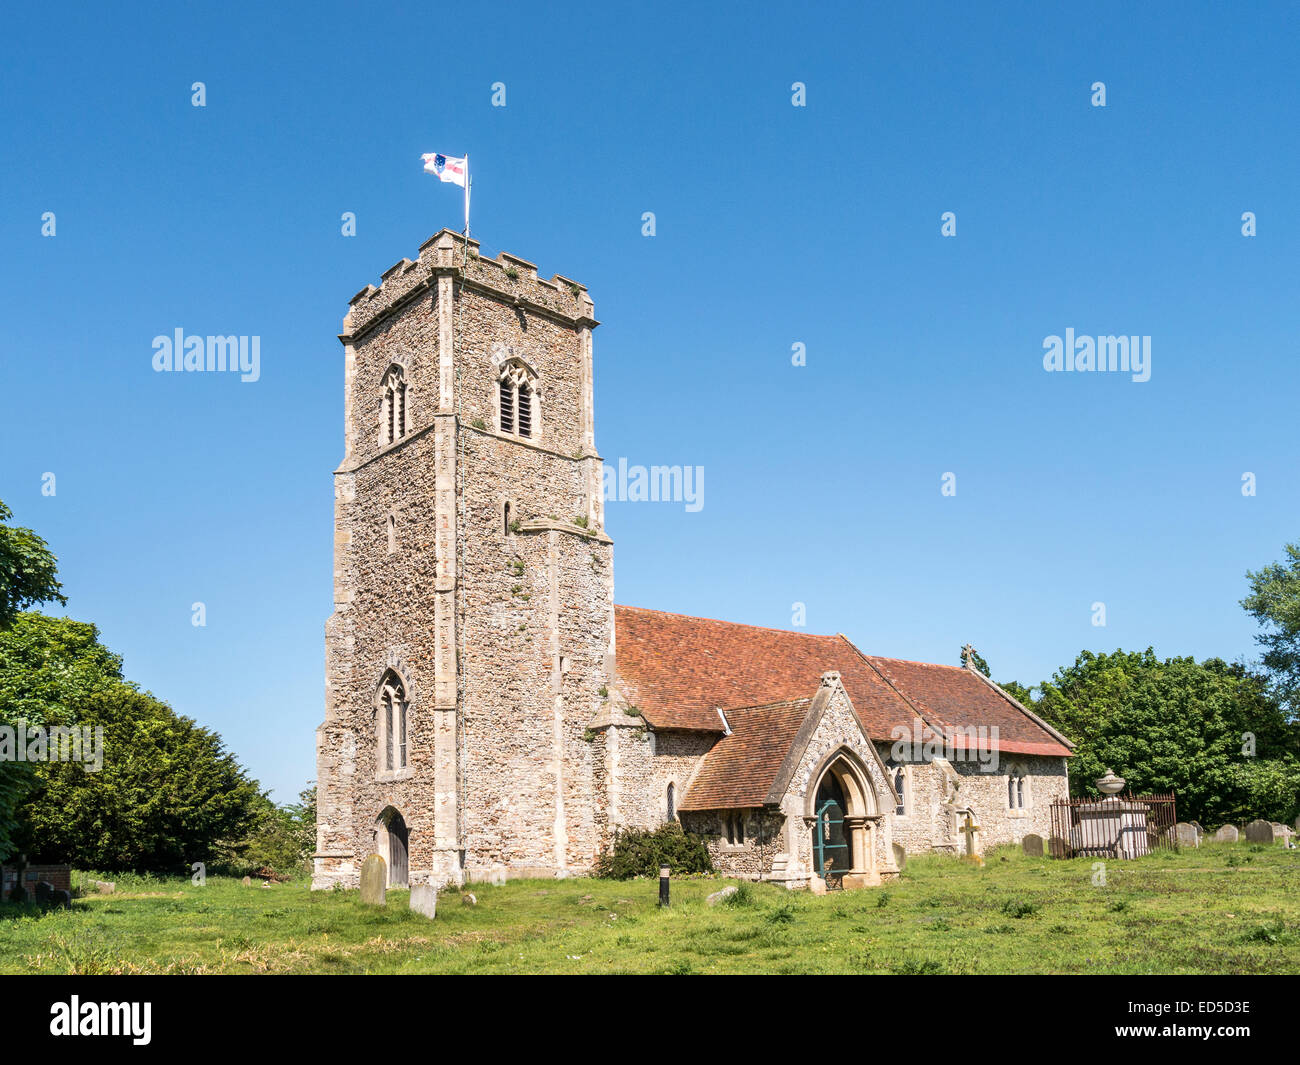 The Church of St Margaret of Antioch in the picturesque village of Shottisham, Suffolk. - Stock Image